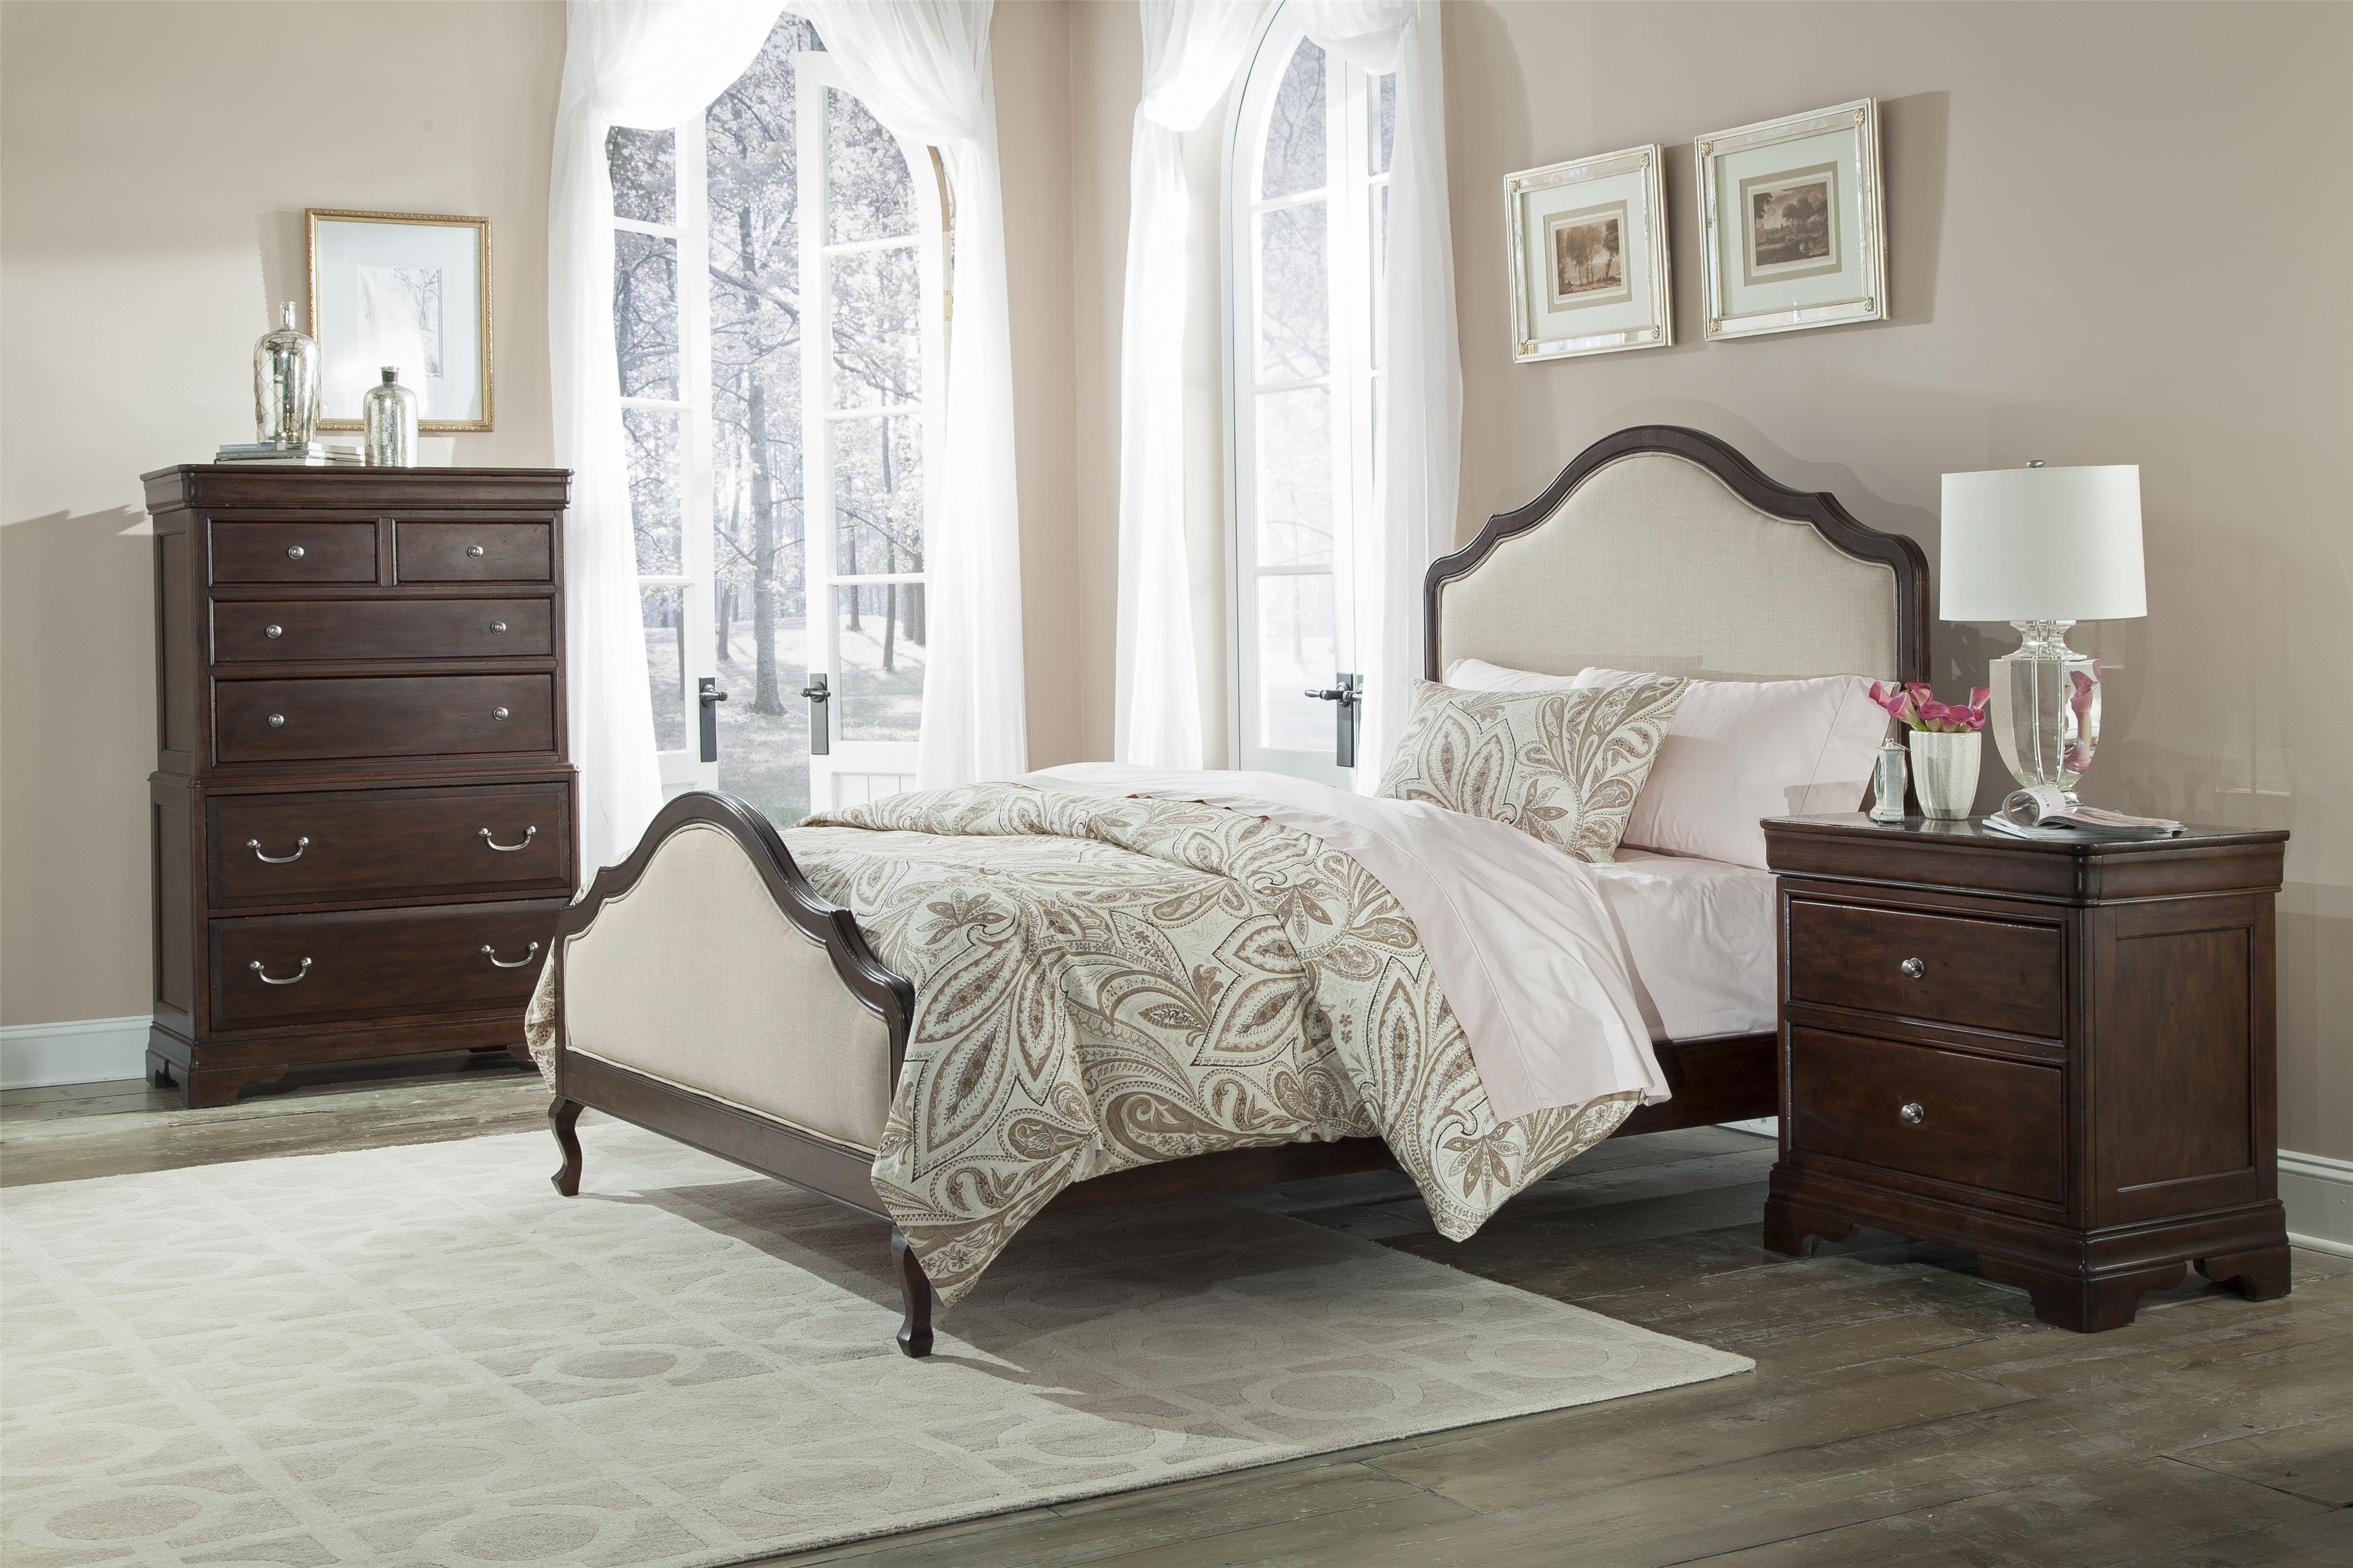 Cresent Fine Furniture Provence King Bedroom Group - Item Number: 1700 K Bedroom Group 3